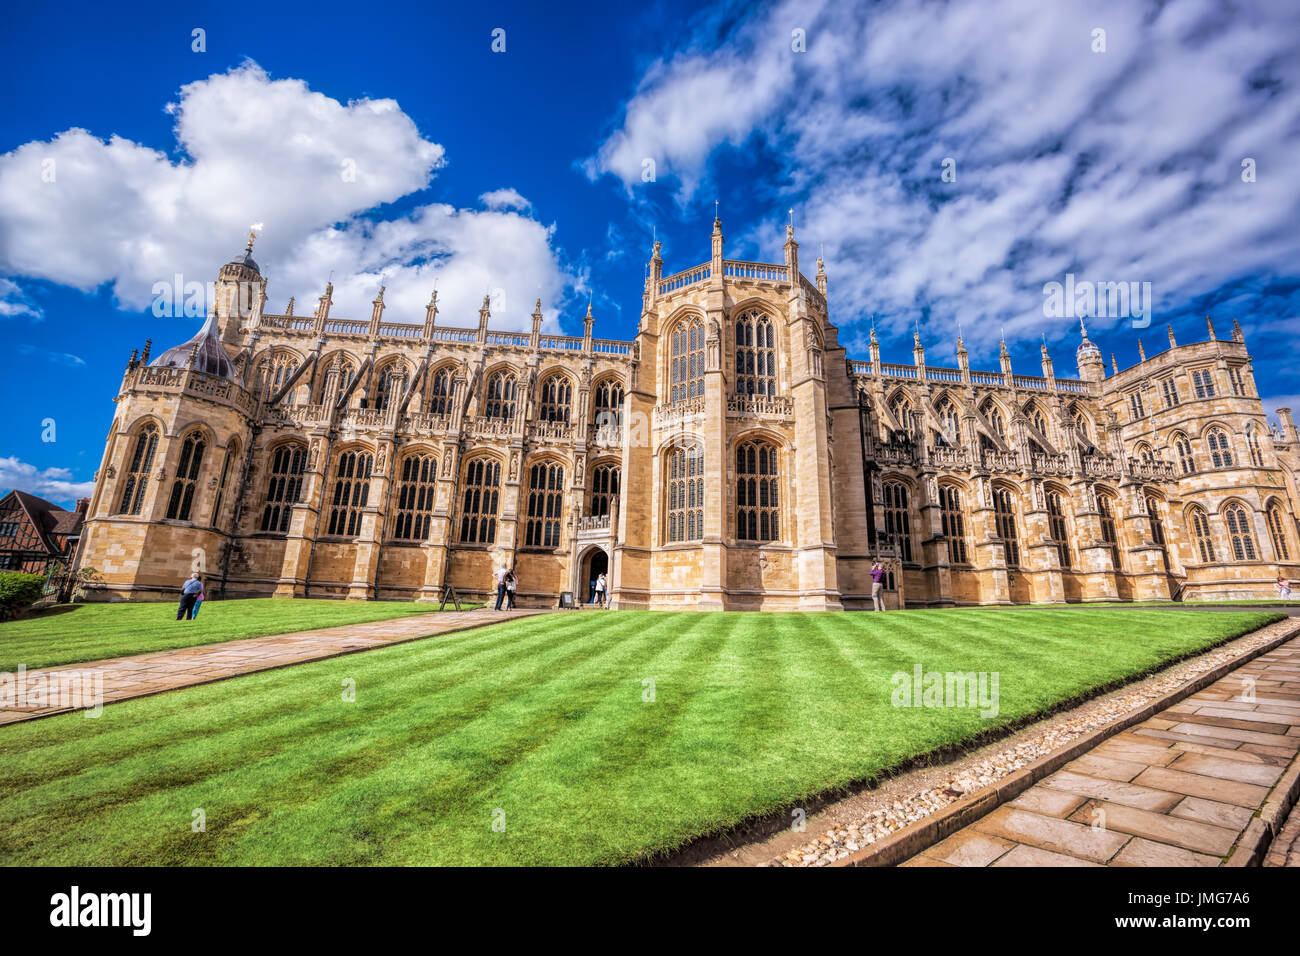 St George's Chapel inside Windsor castle near London, United Kingdom - Stock Image